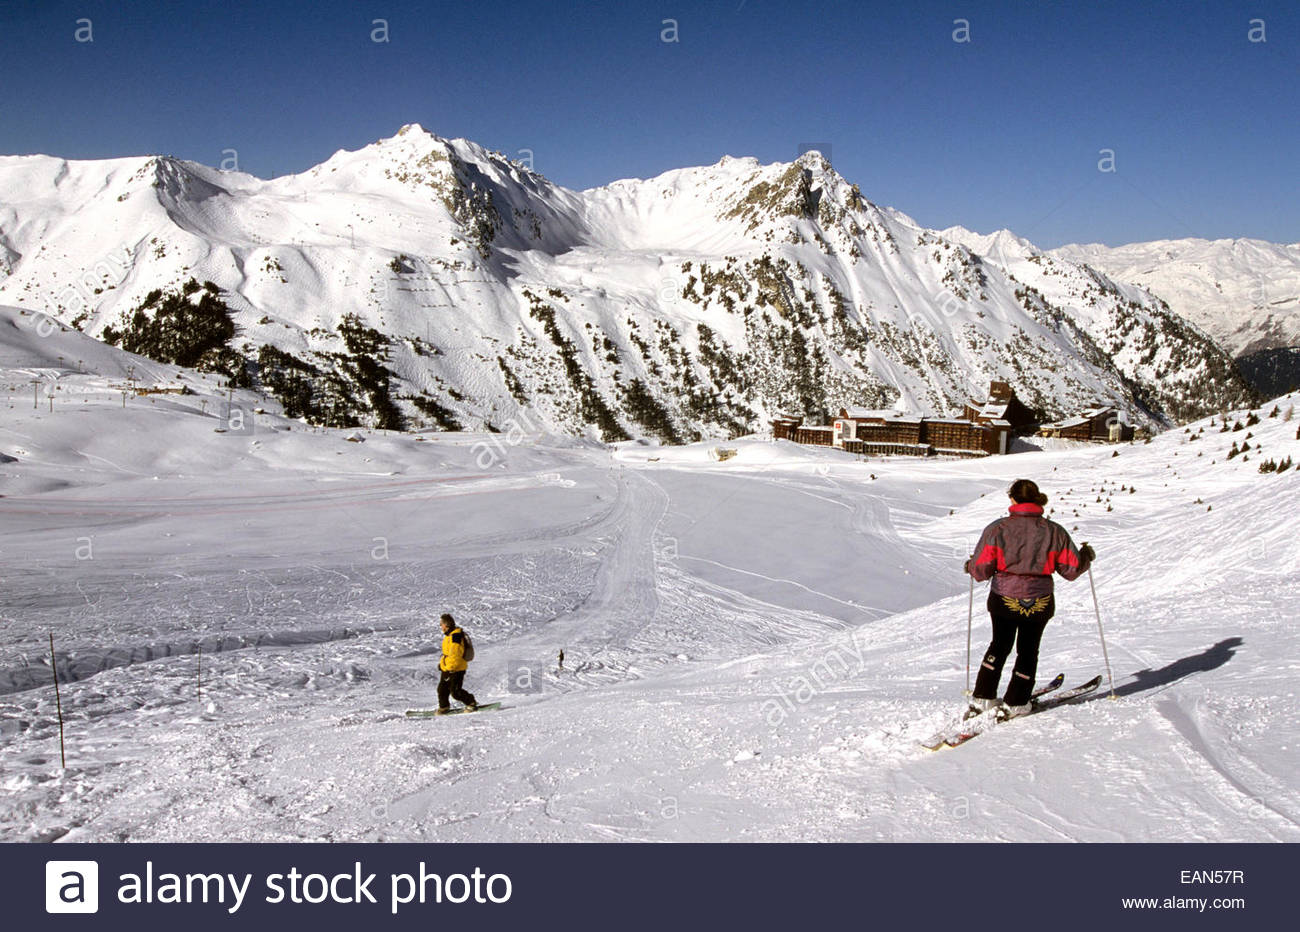 Les Arcs and snow slope. Savoie, France - Stock Image